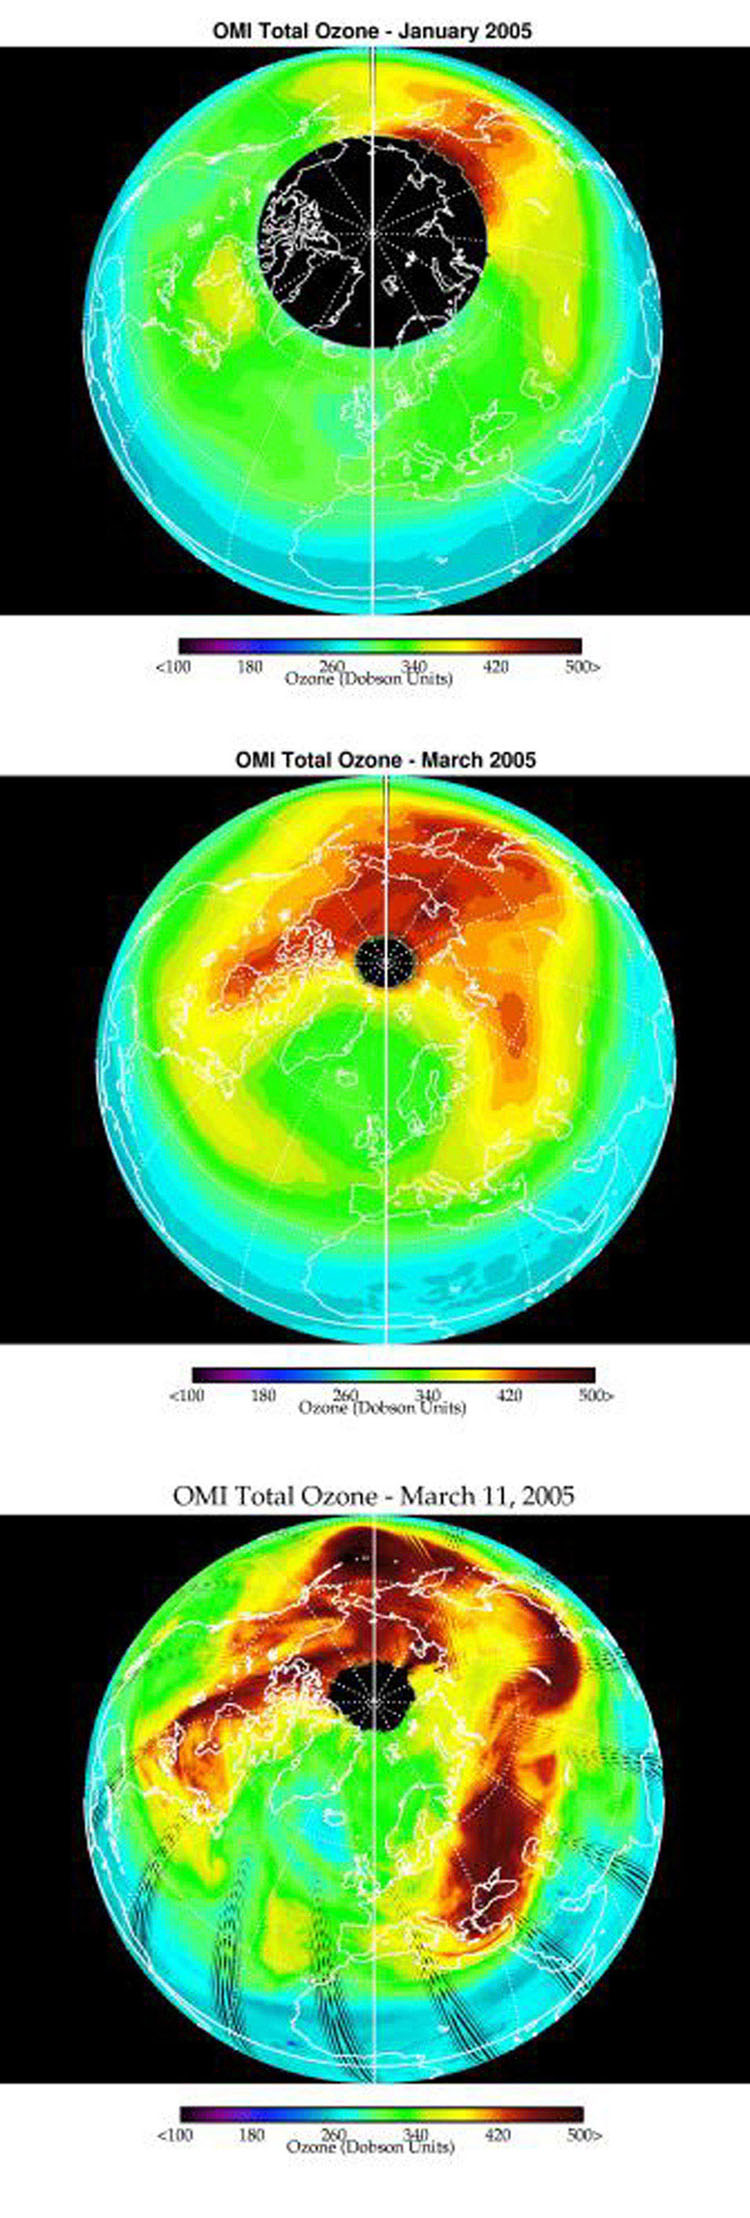 Images from the Ozone Monitoring Instrument onboard NASA's Aura spacecraft shows the average total column ozone during the months of January and March, and the total column ozone on the single day of 11 March, 2005.